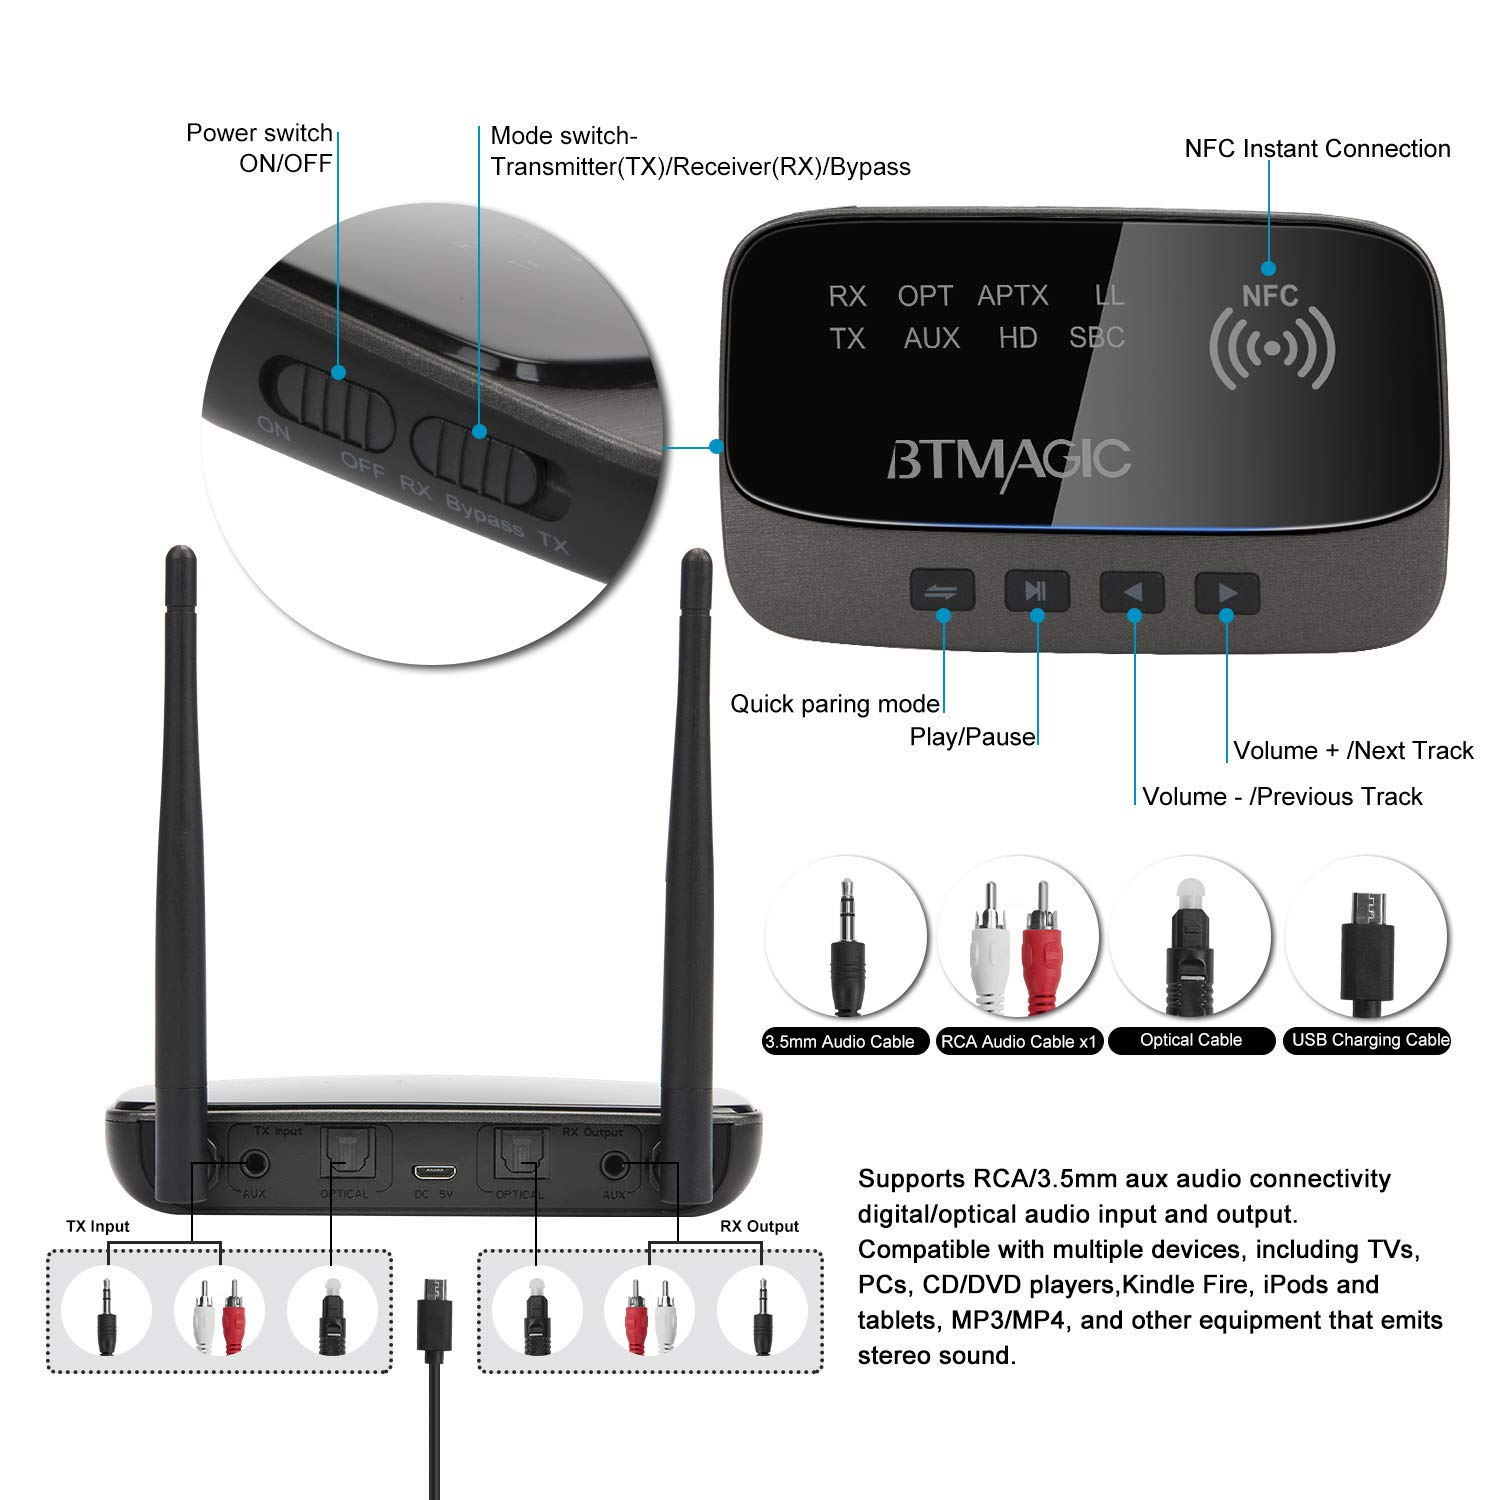 BTMAGIC Bluetooth 5.0 Transmitter Receiver 265FT Long Range 3 in 1 Bluetooth Audio Adapter aptX HD & aptX Low Latency, Optical RCA AUX 3.5mm for TV Home Stereo PC Headphone/Speaker, USB Rechargeable by BTMAGIC (Image #8)